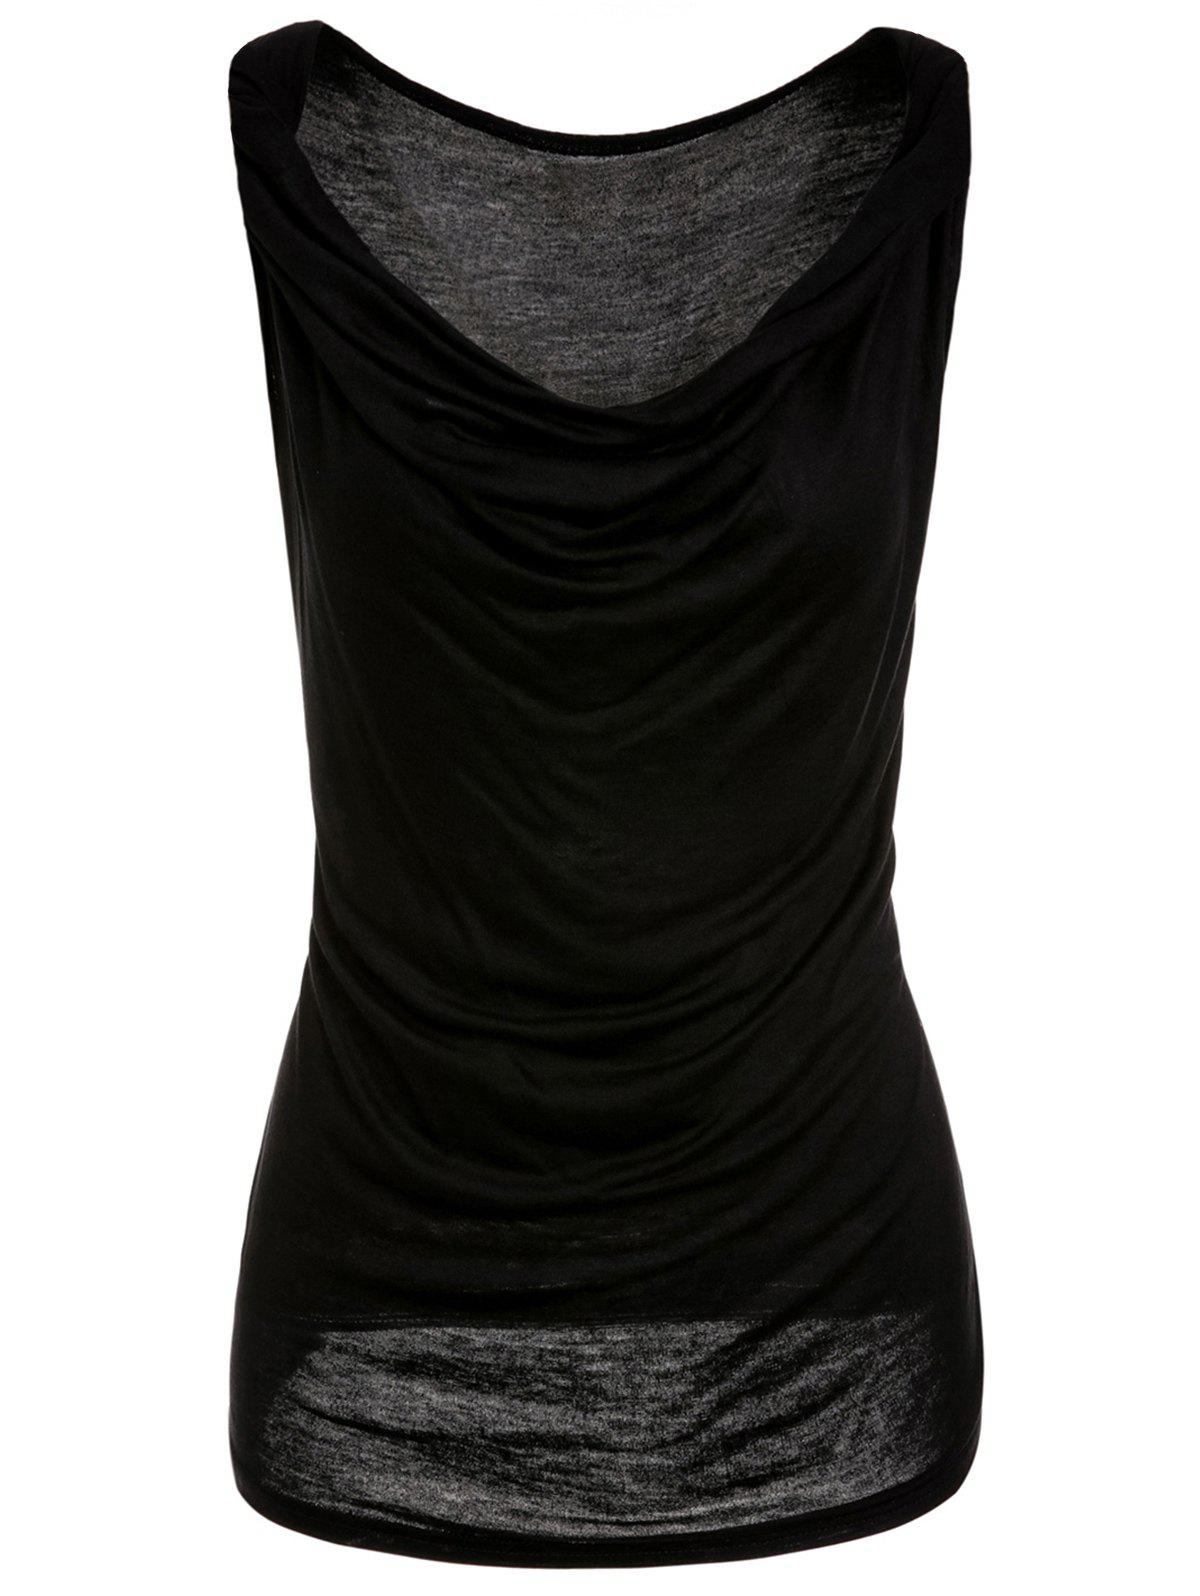 Fashionable Sleeveless Solid Color T-Shirt For Women - BLACK M